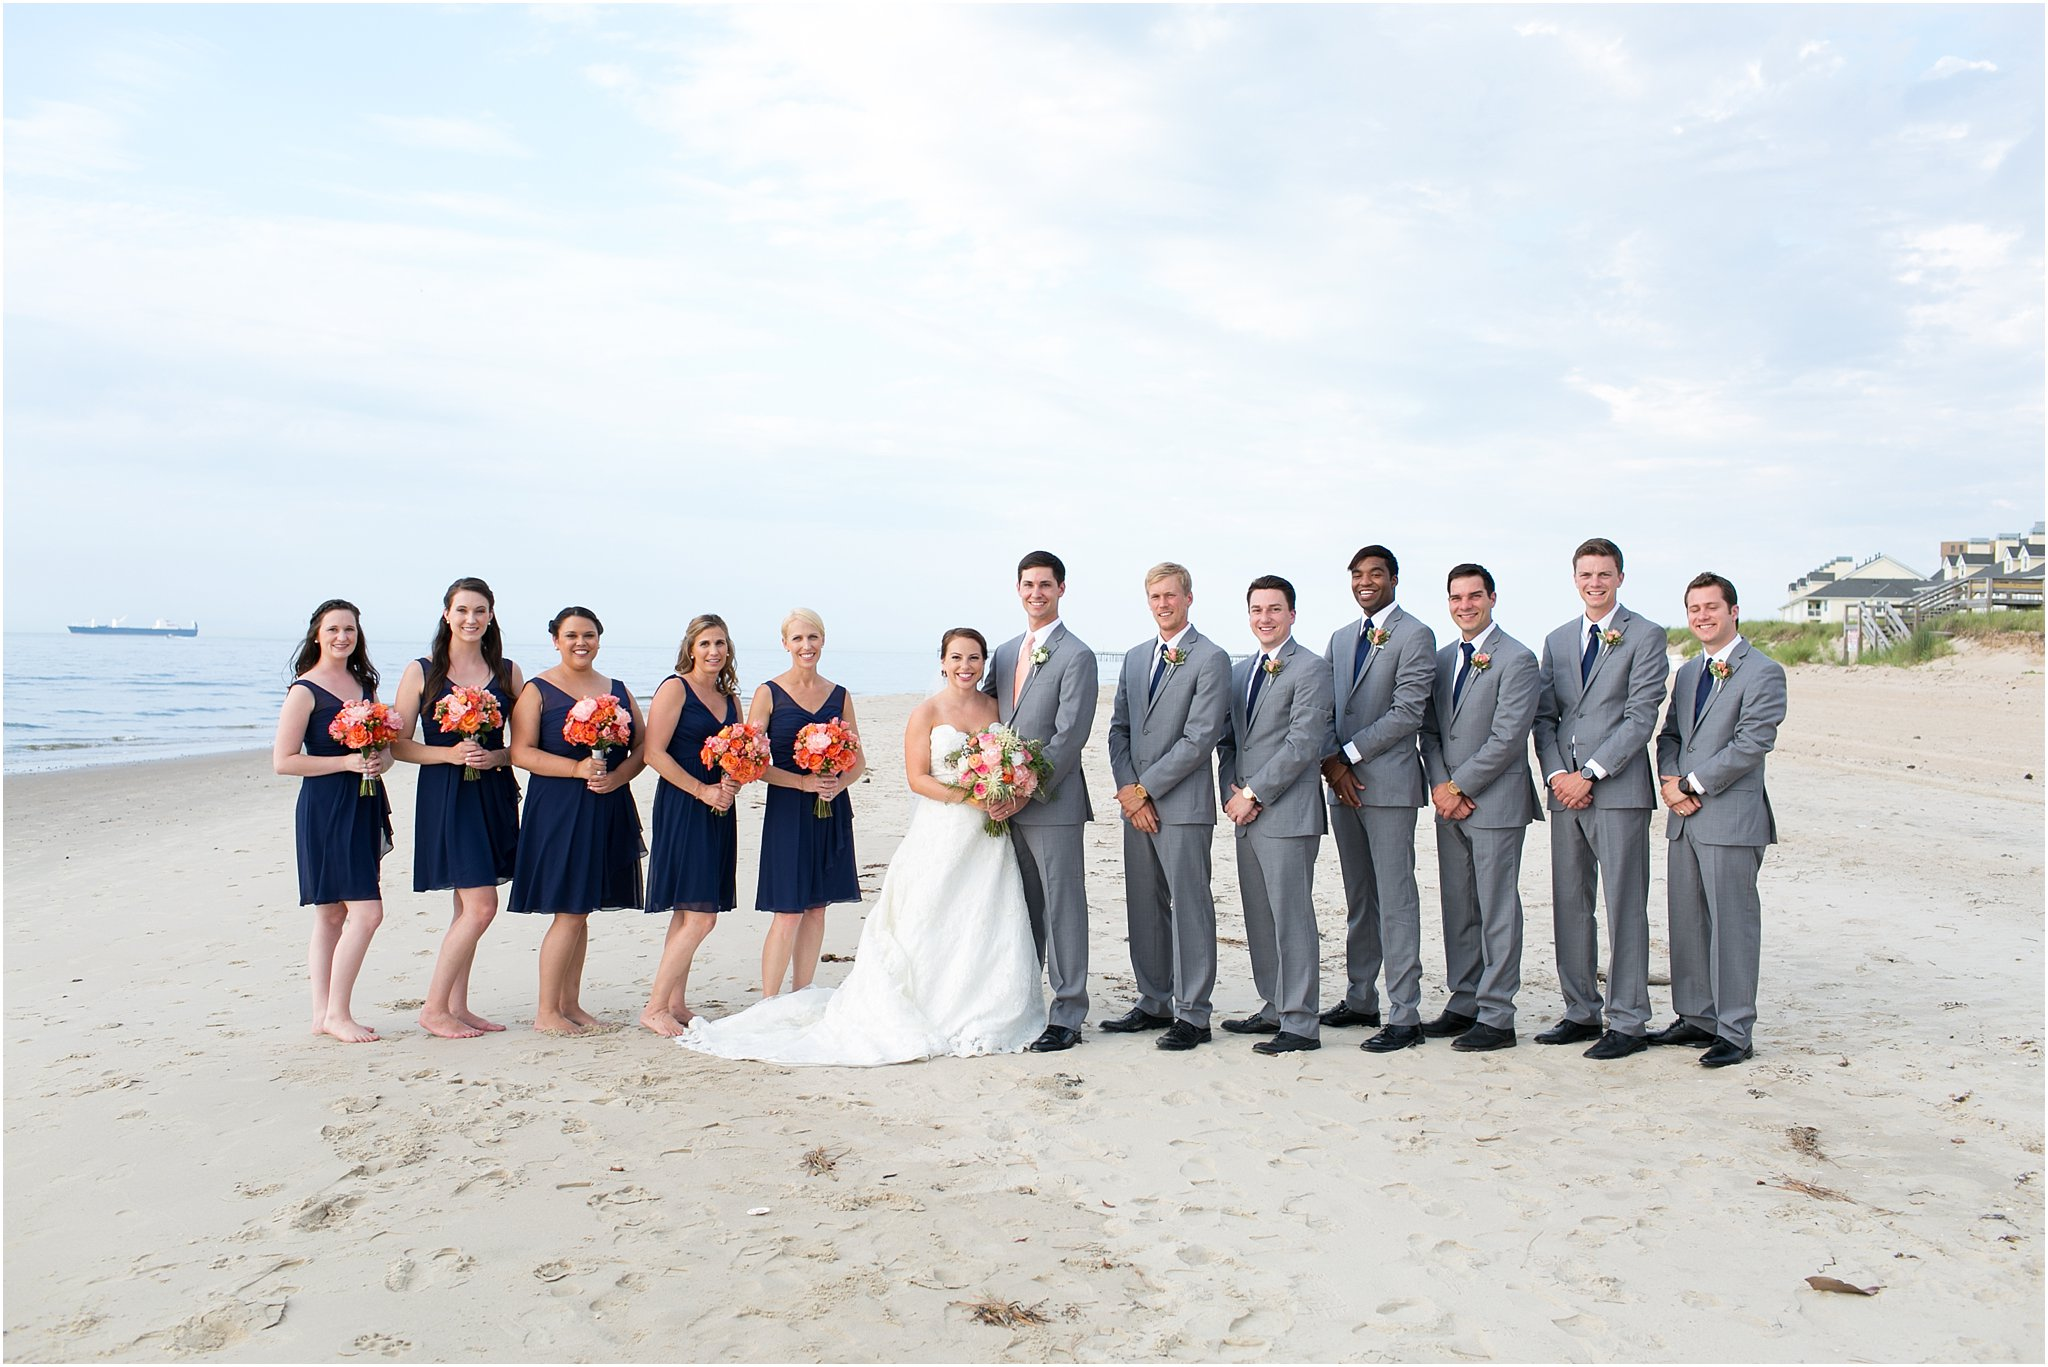 jessica_ryan_photography_wedding_photography_virginiabeach_virginia_candid_authentic_wedding_portraits_marina_shores_yacht_club_chesapeake_bay_1854